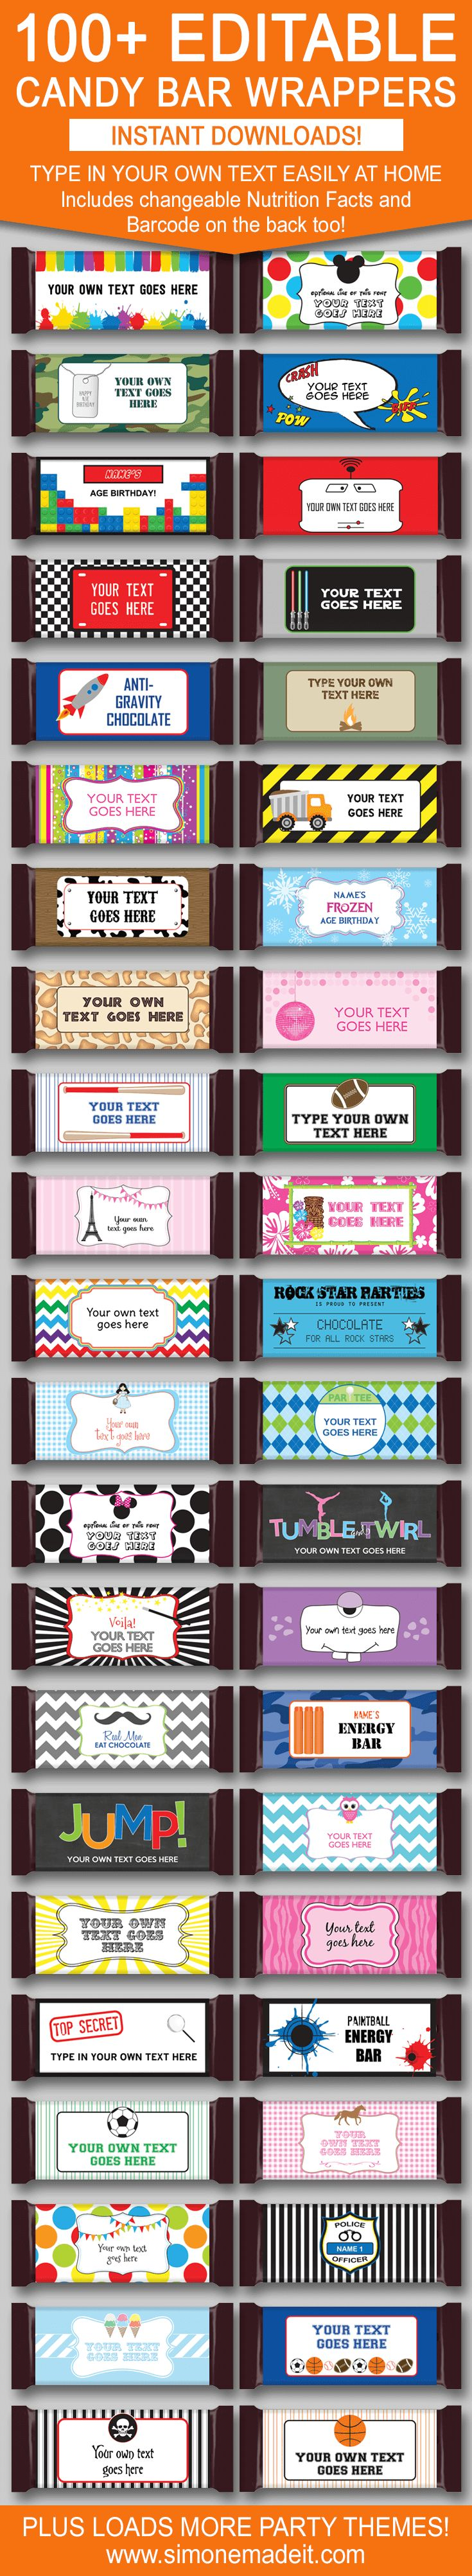 18 best candy bar wrapper images on pinterest candy bar wrappers